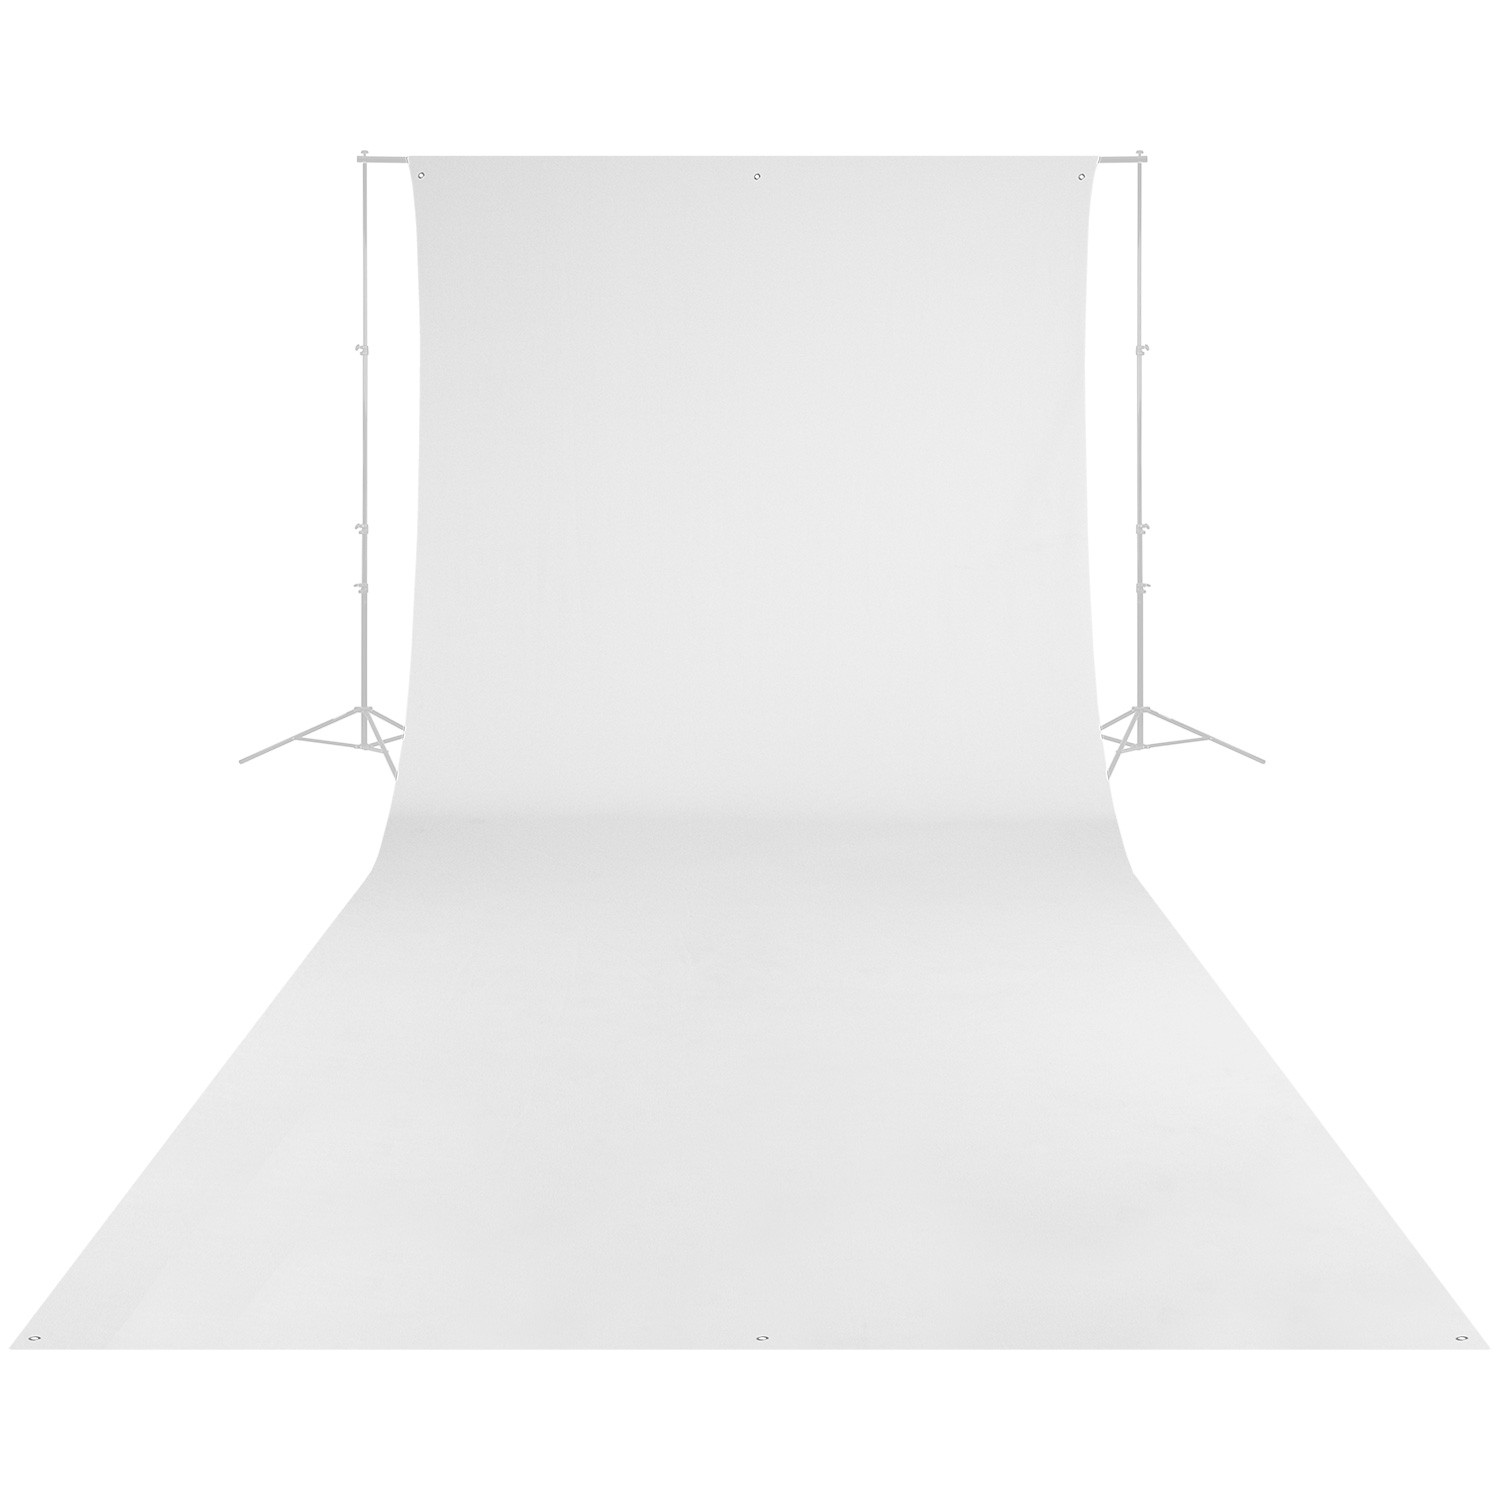 Wrinkle-Resistant Backdrop - High-Key White (9' x 20')